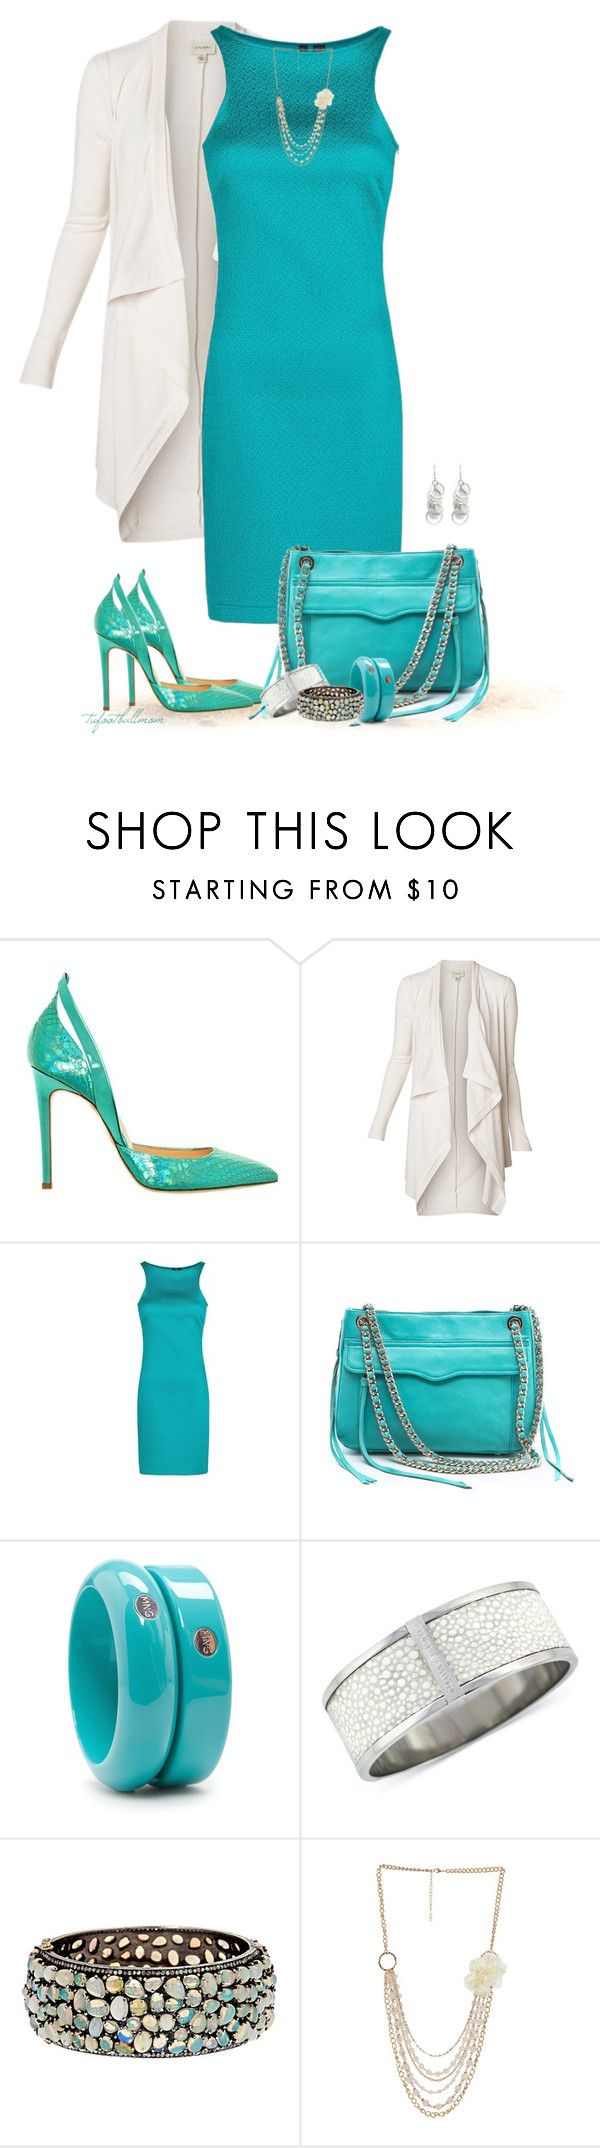 Chain Bag by tufootballmom on Polyvore featuring MANGO, Witchery, Alejandro Ingelmo, Rebecca Minkoff, Vince Camuto, Oasis and Wet Seal